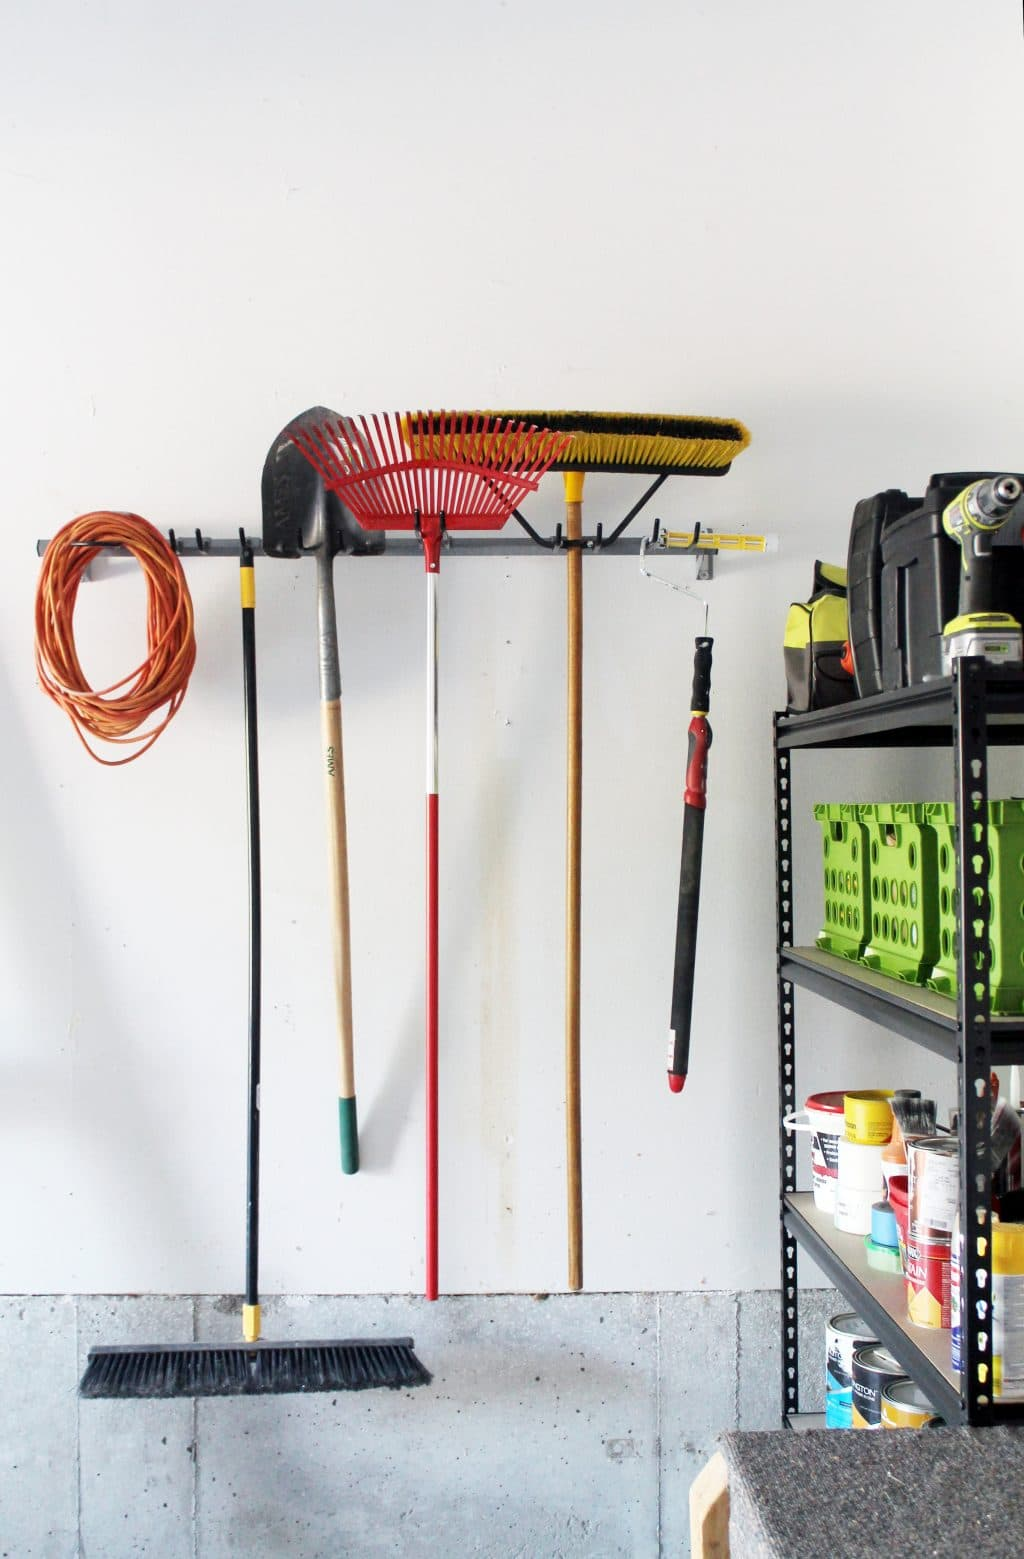 Garden Tool Storage Ideas garden tool rack steel rack for shovels hoes gardenerscom Its No Fuss The Hooks Are Adjustable And It Keeps Our Tools Off The Ground Plus Theres Lots More Room To Grow Our Collection